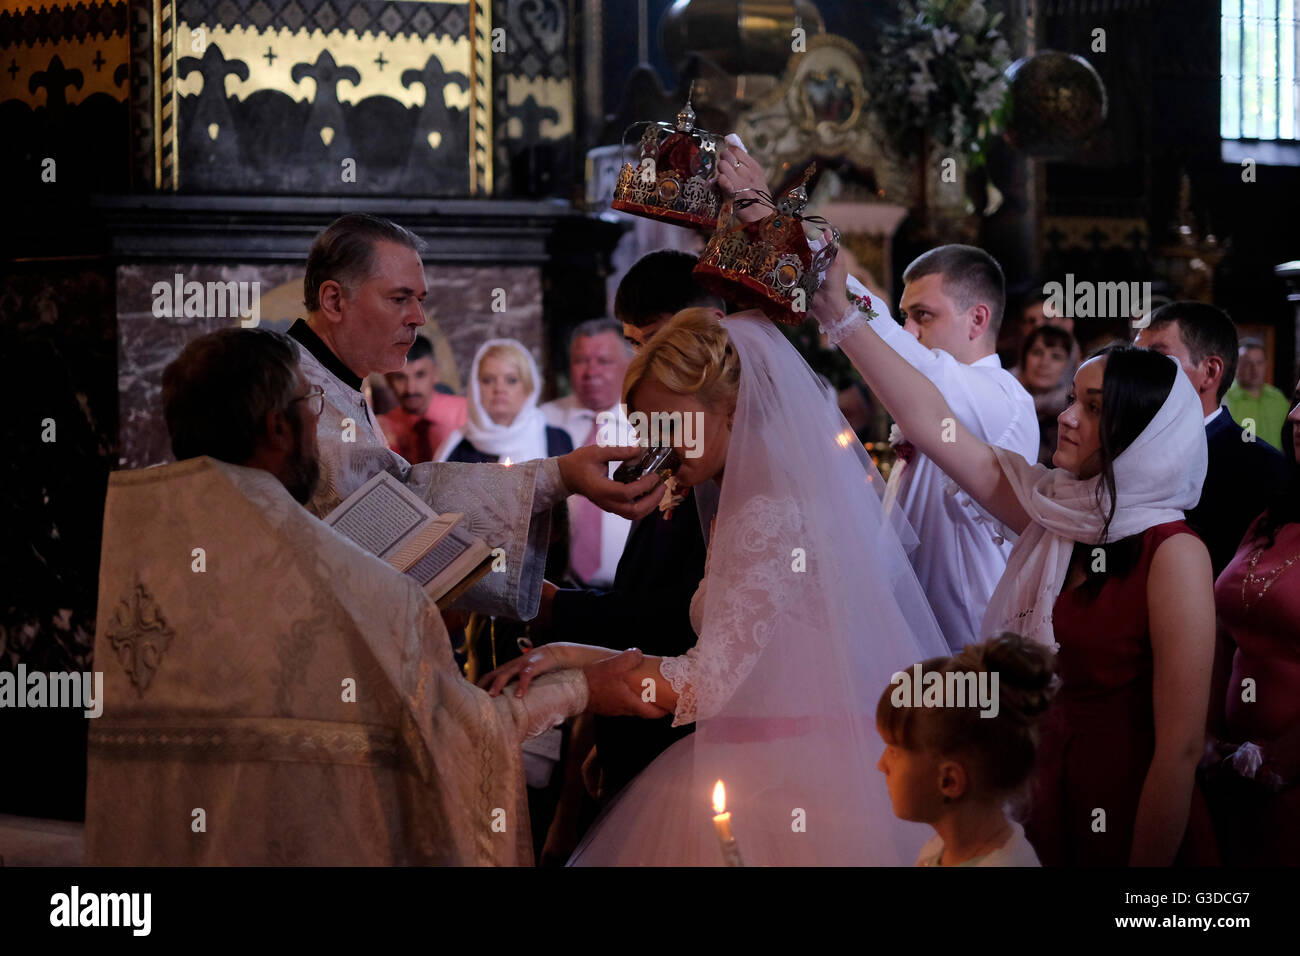 An Ukrainian Groom And Bride Are Crowned During Traditional Crowning Ceremony Of Eastern Orthodox Church Wedding Inside St Volodymyrs Cathedral In The